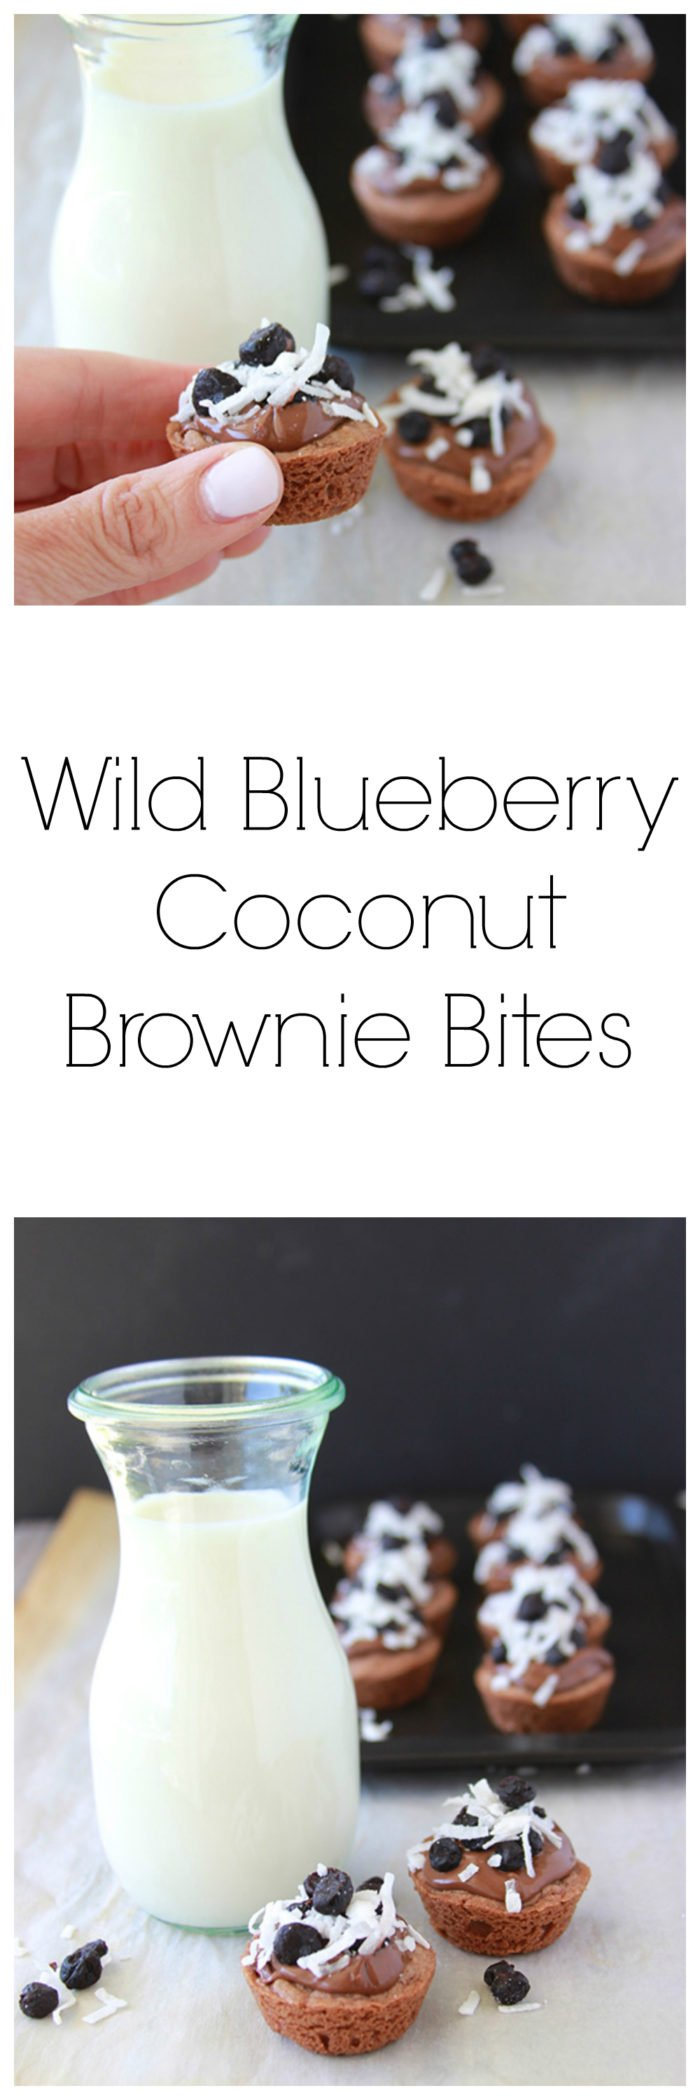 Wild Blueberry and Coconut Brownie Bites are a lovely little bite to share with the ones you love! www.cookingwithruthie.com